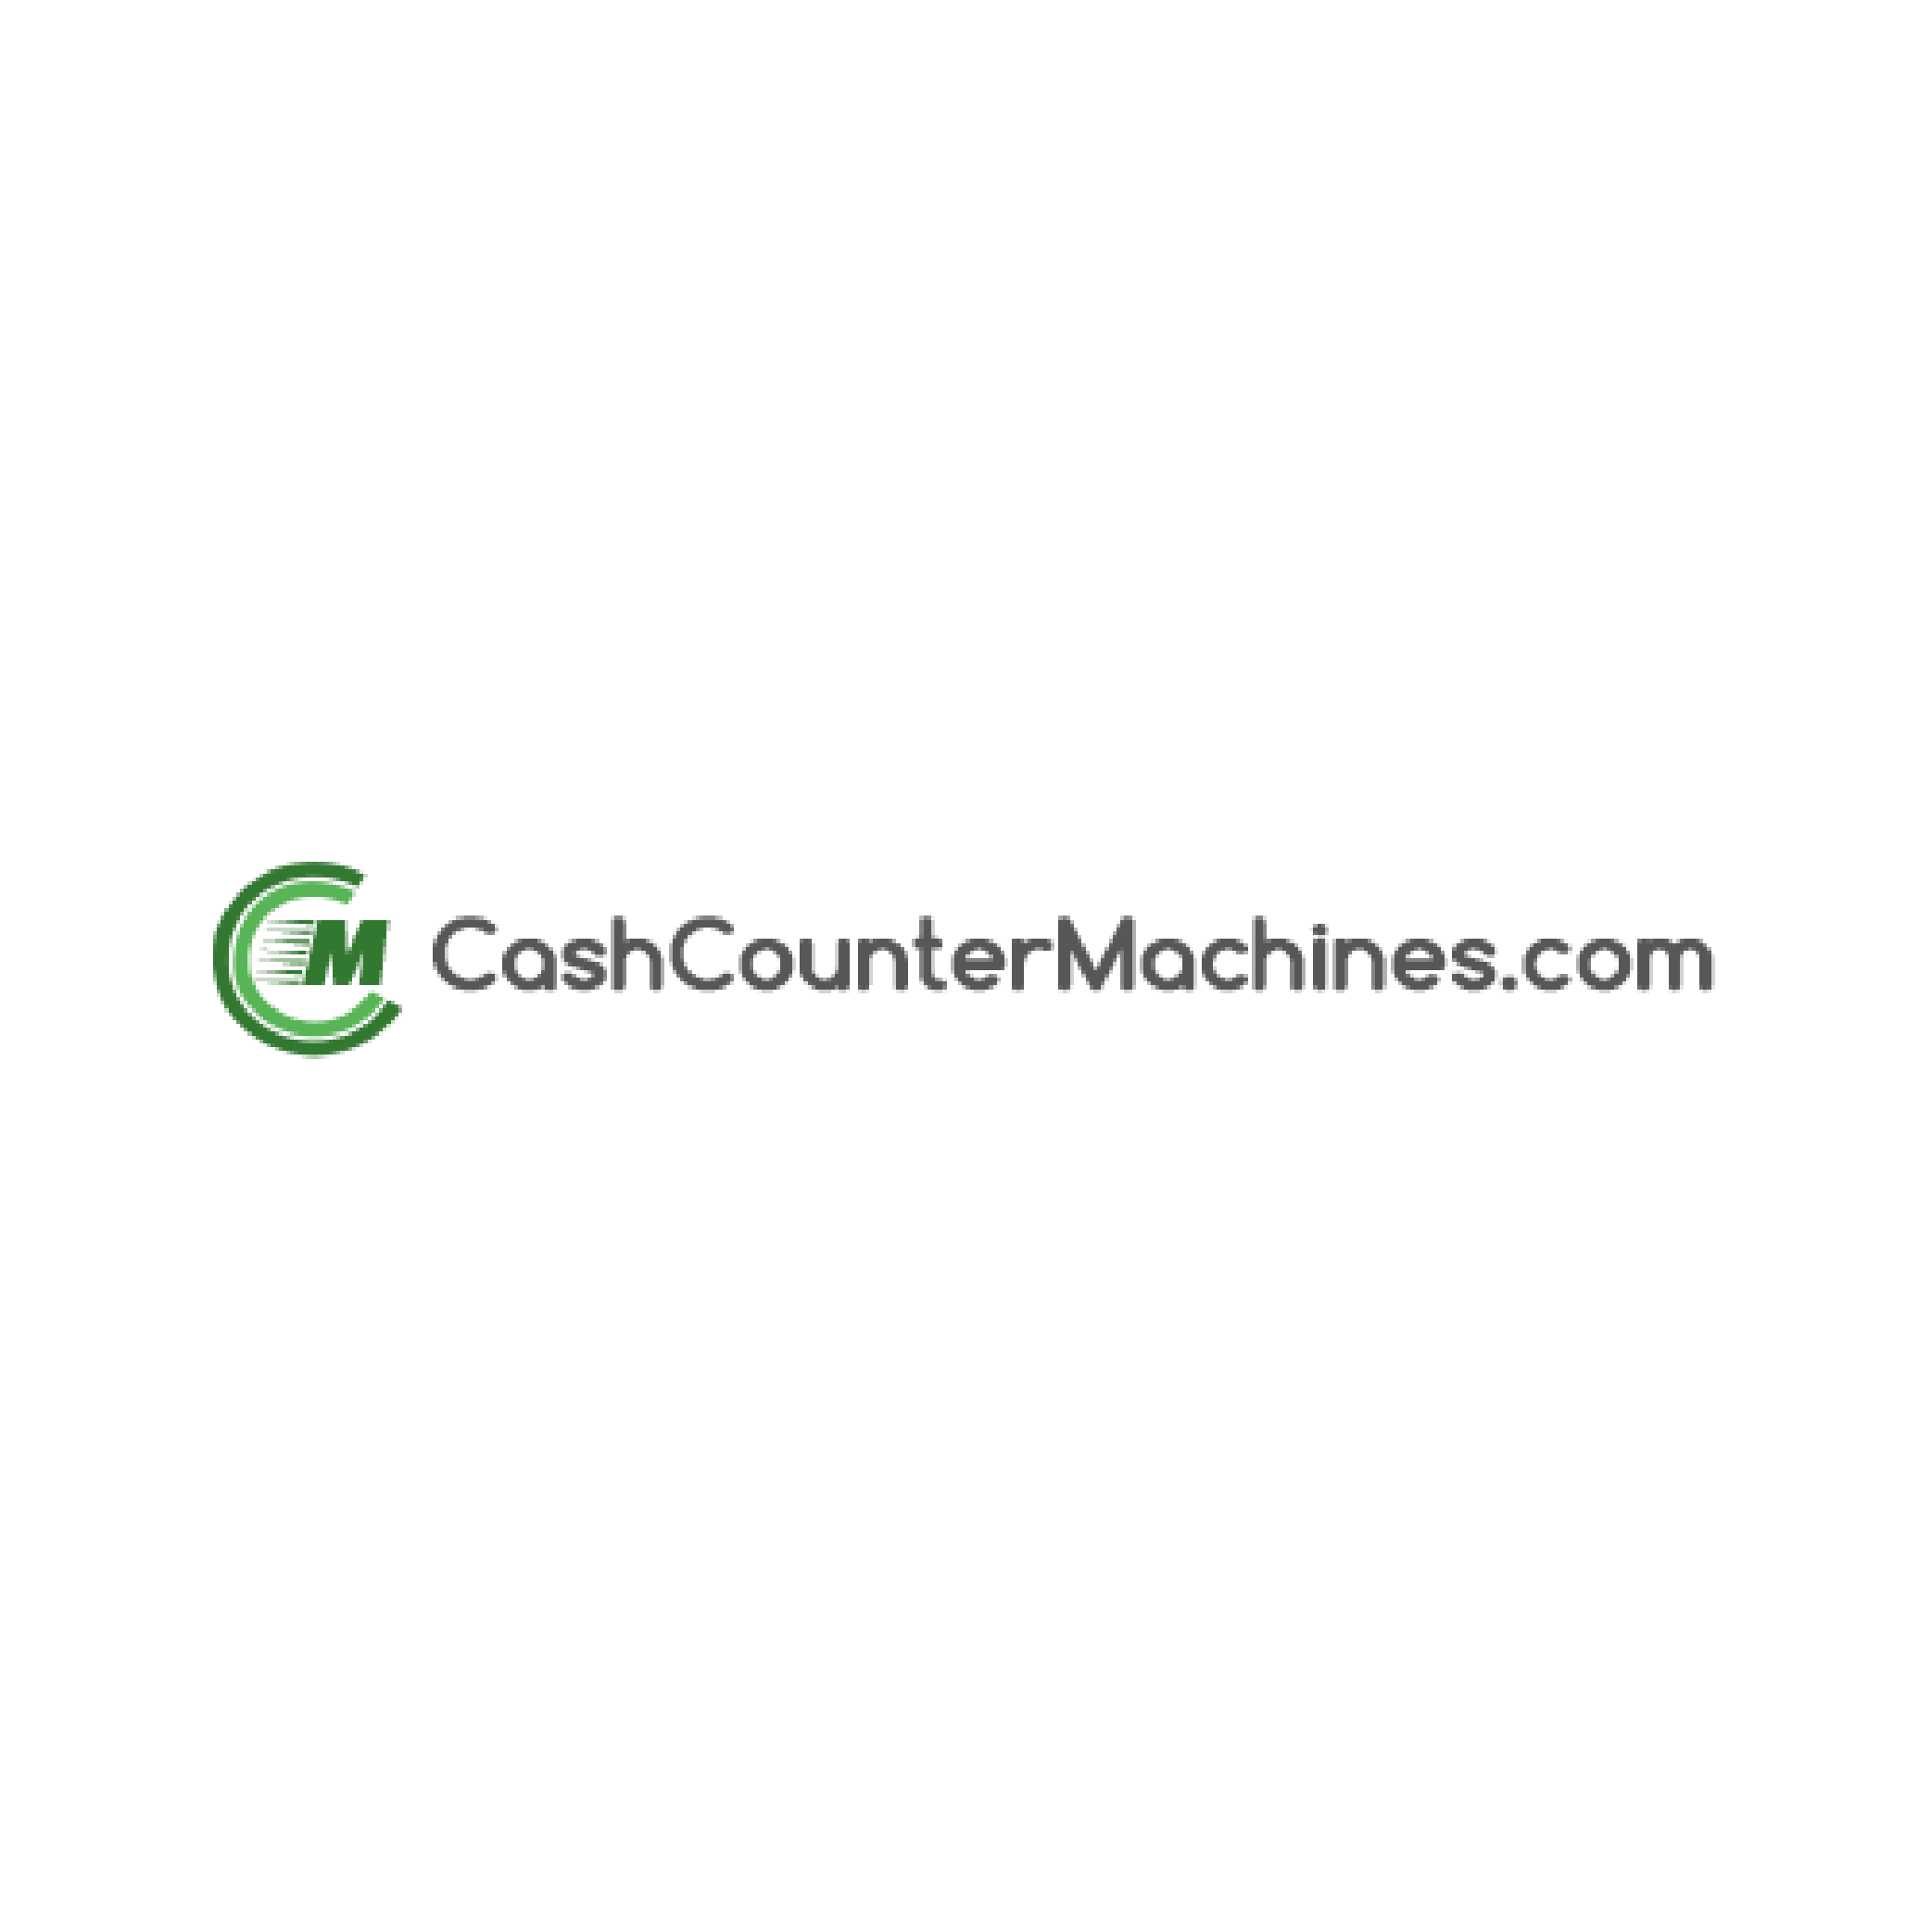 CashCounterMachines2018-01